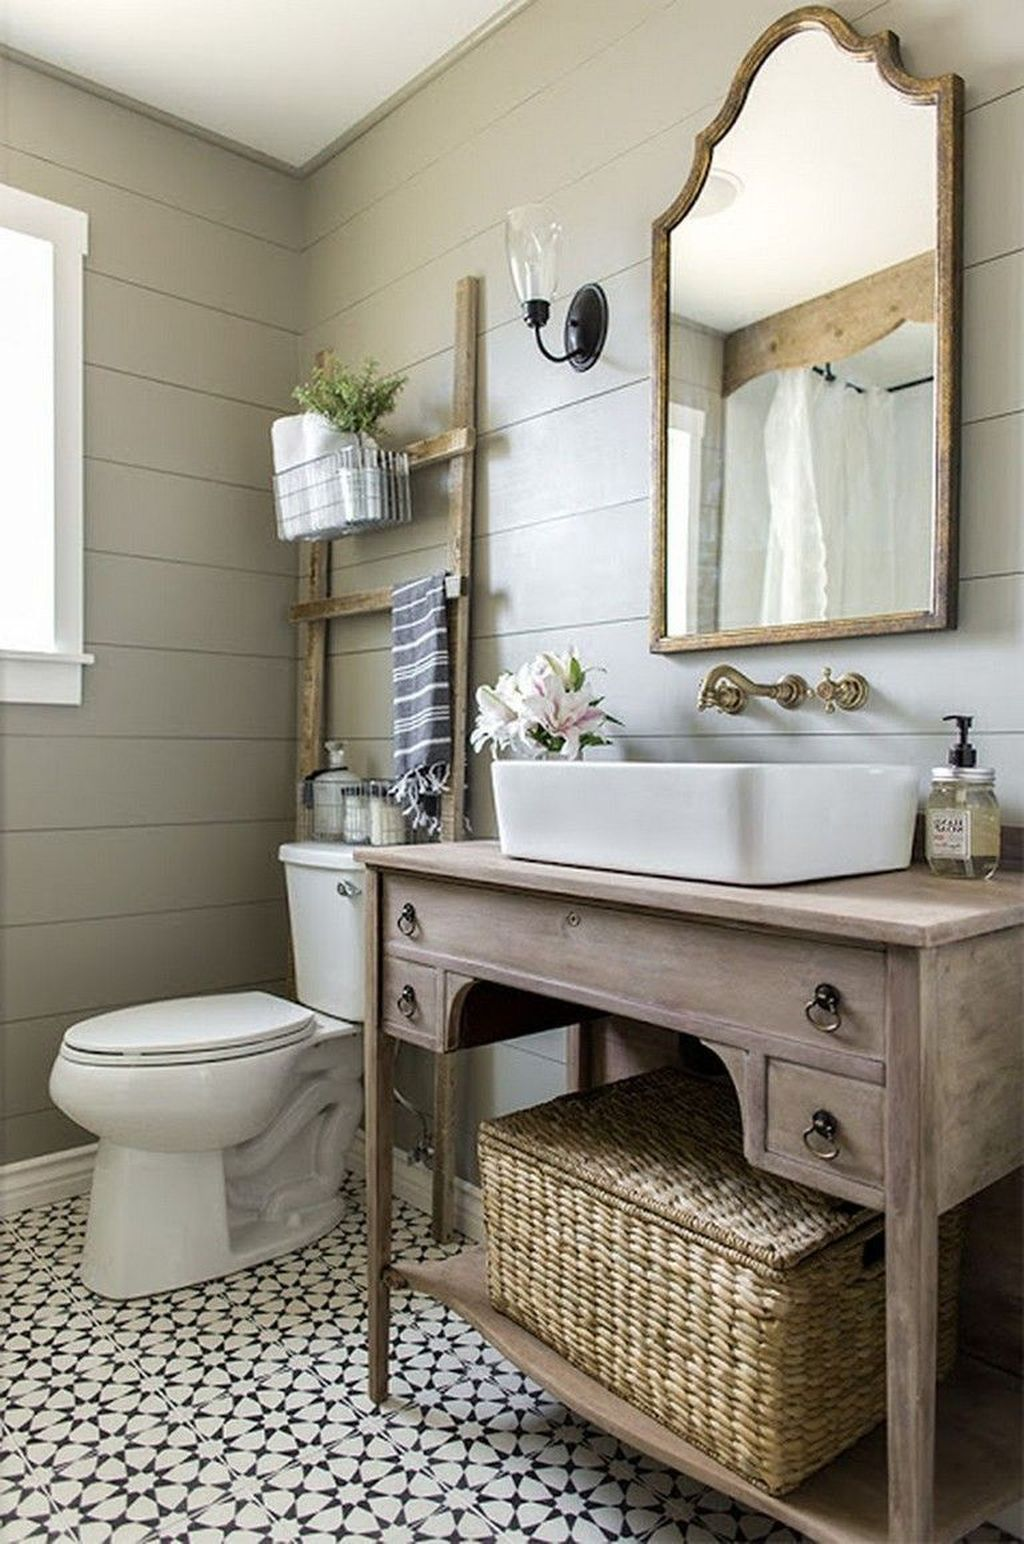 Awesome Small Bathroom Remodel Ideas On A Budget 34